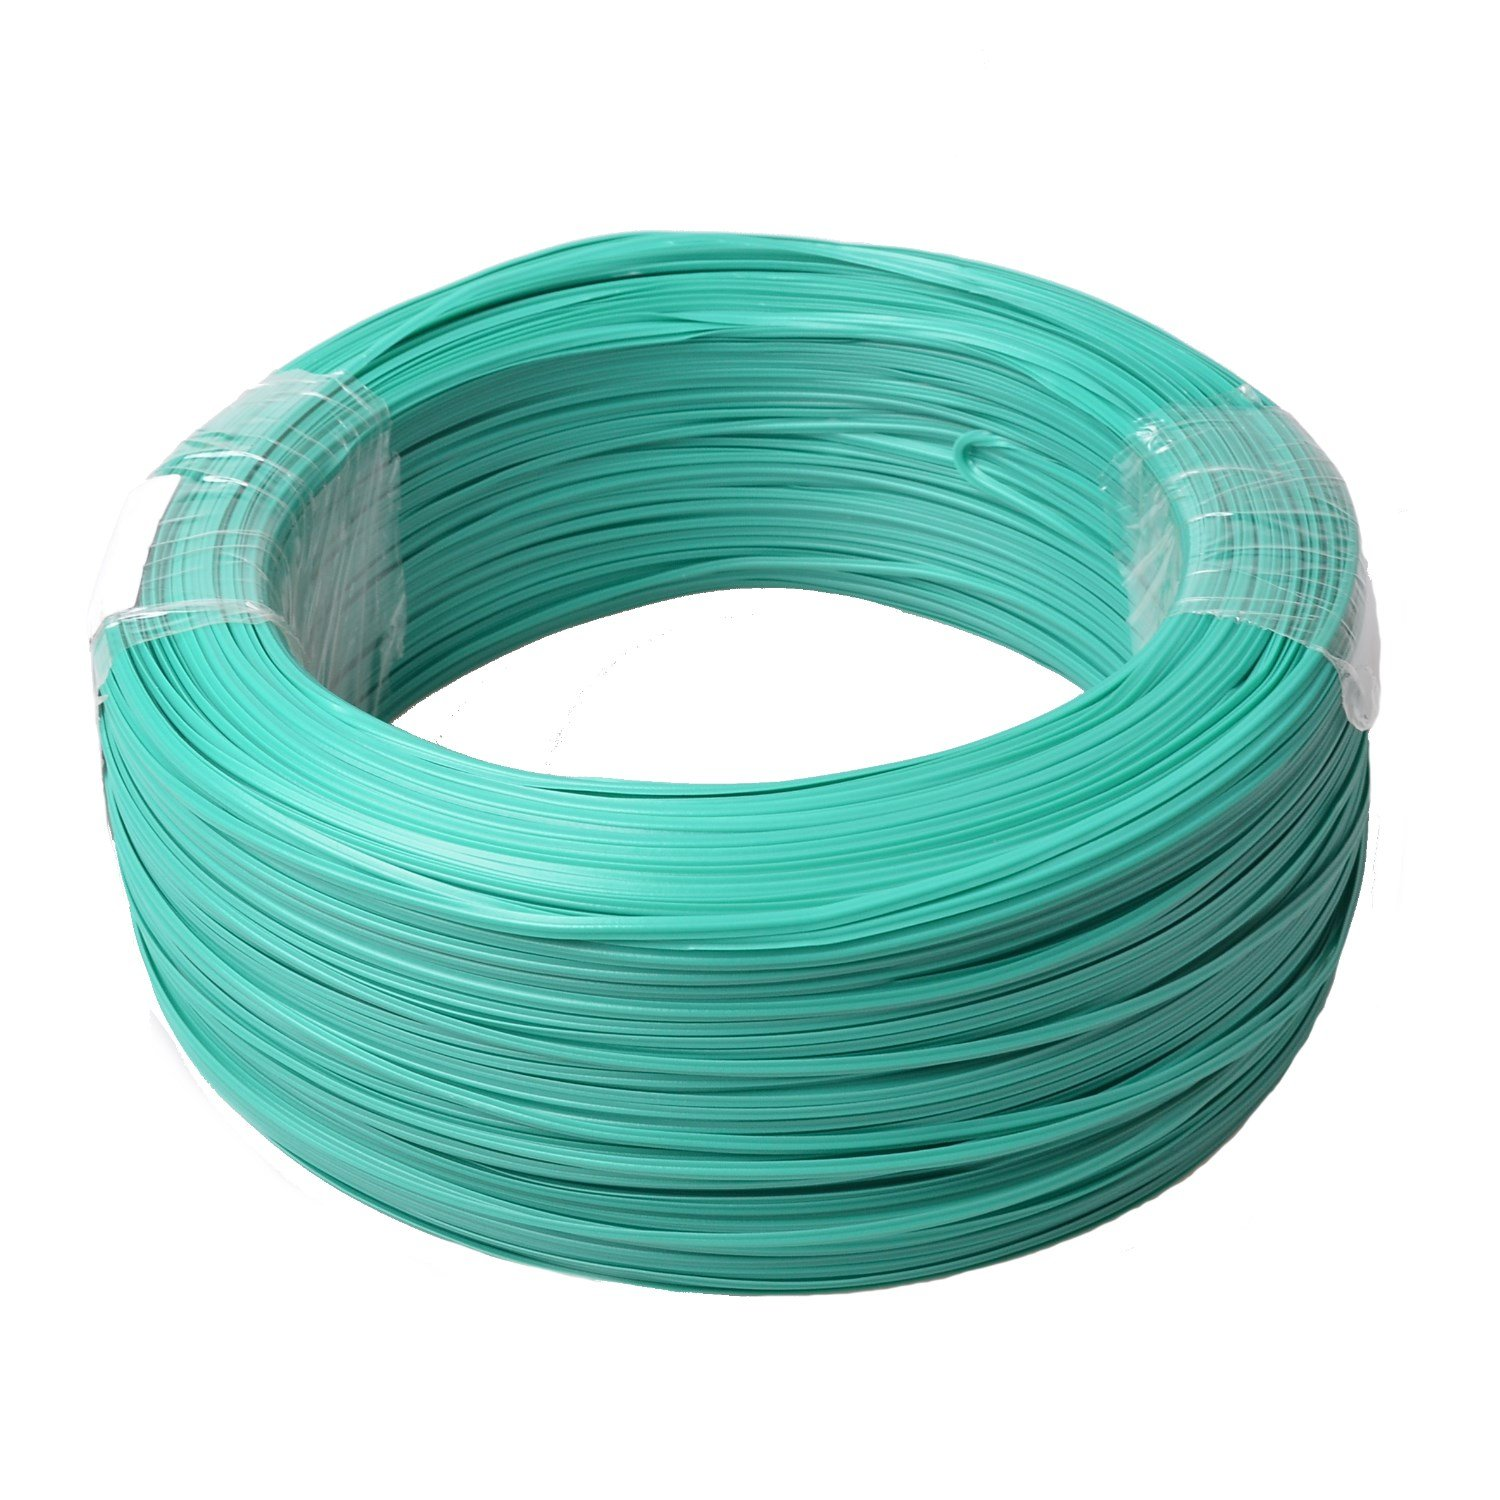 Firstcom Sturdy Gardening Plastic Twist Ties Plant Training Wire Cable Binder Roll 820 Feet (250m) Green Reusable Steel Wire Plastic Coating by Firstcom (Image #1)